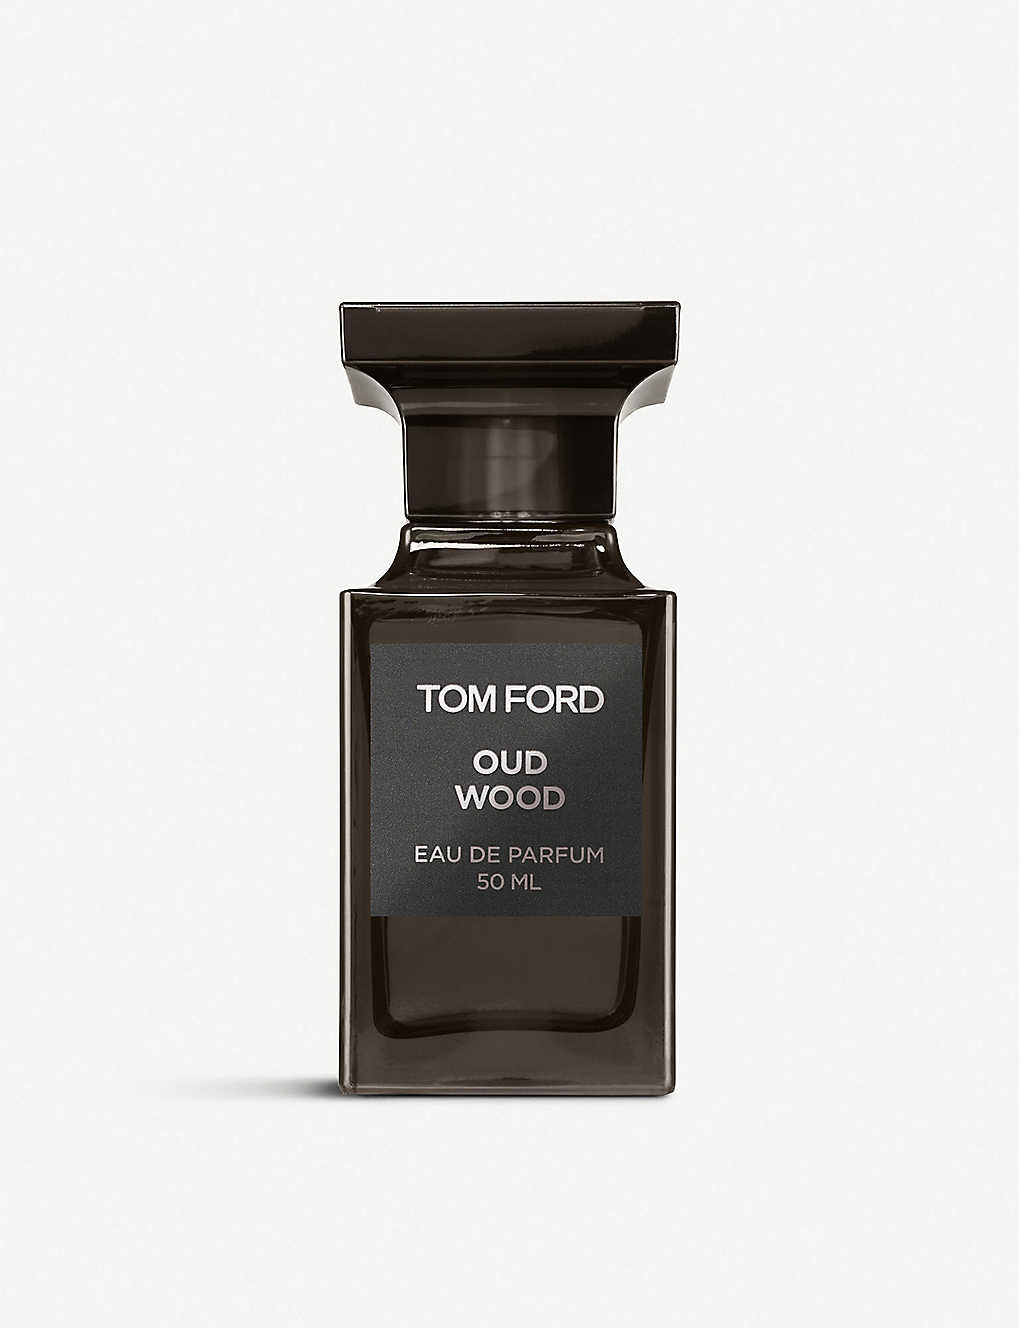 TOM FORD: Oud Wood eau de parfum 50ml